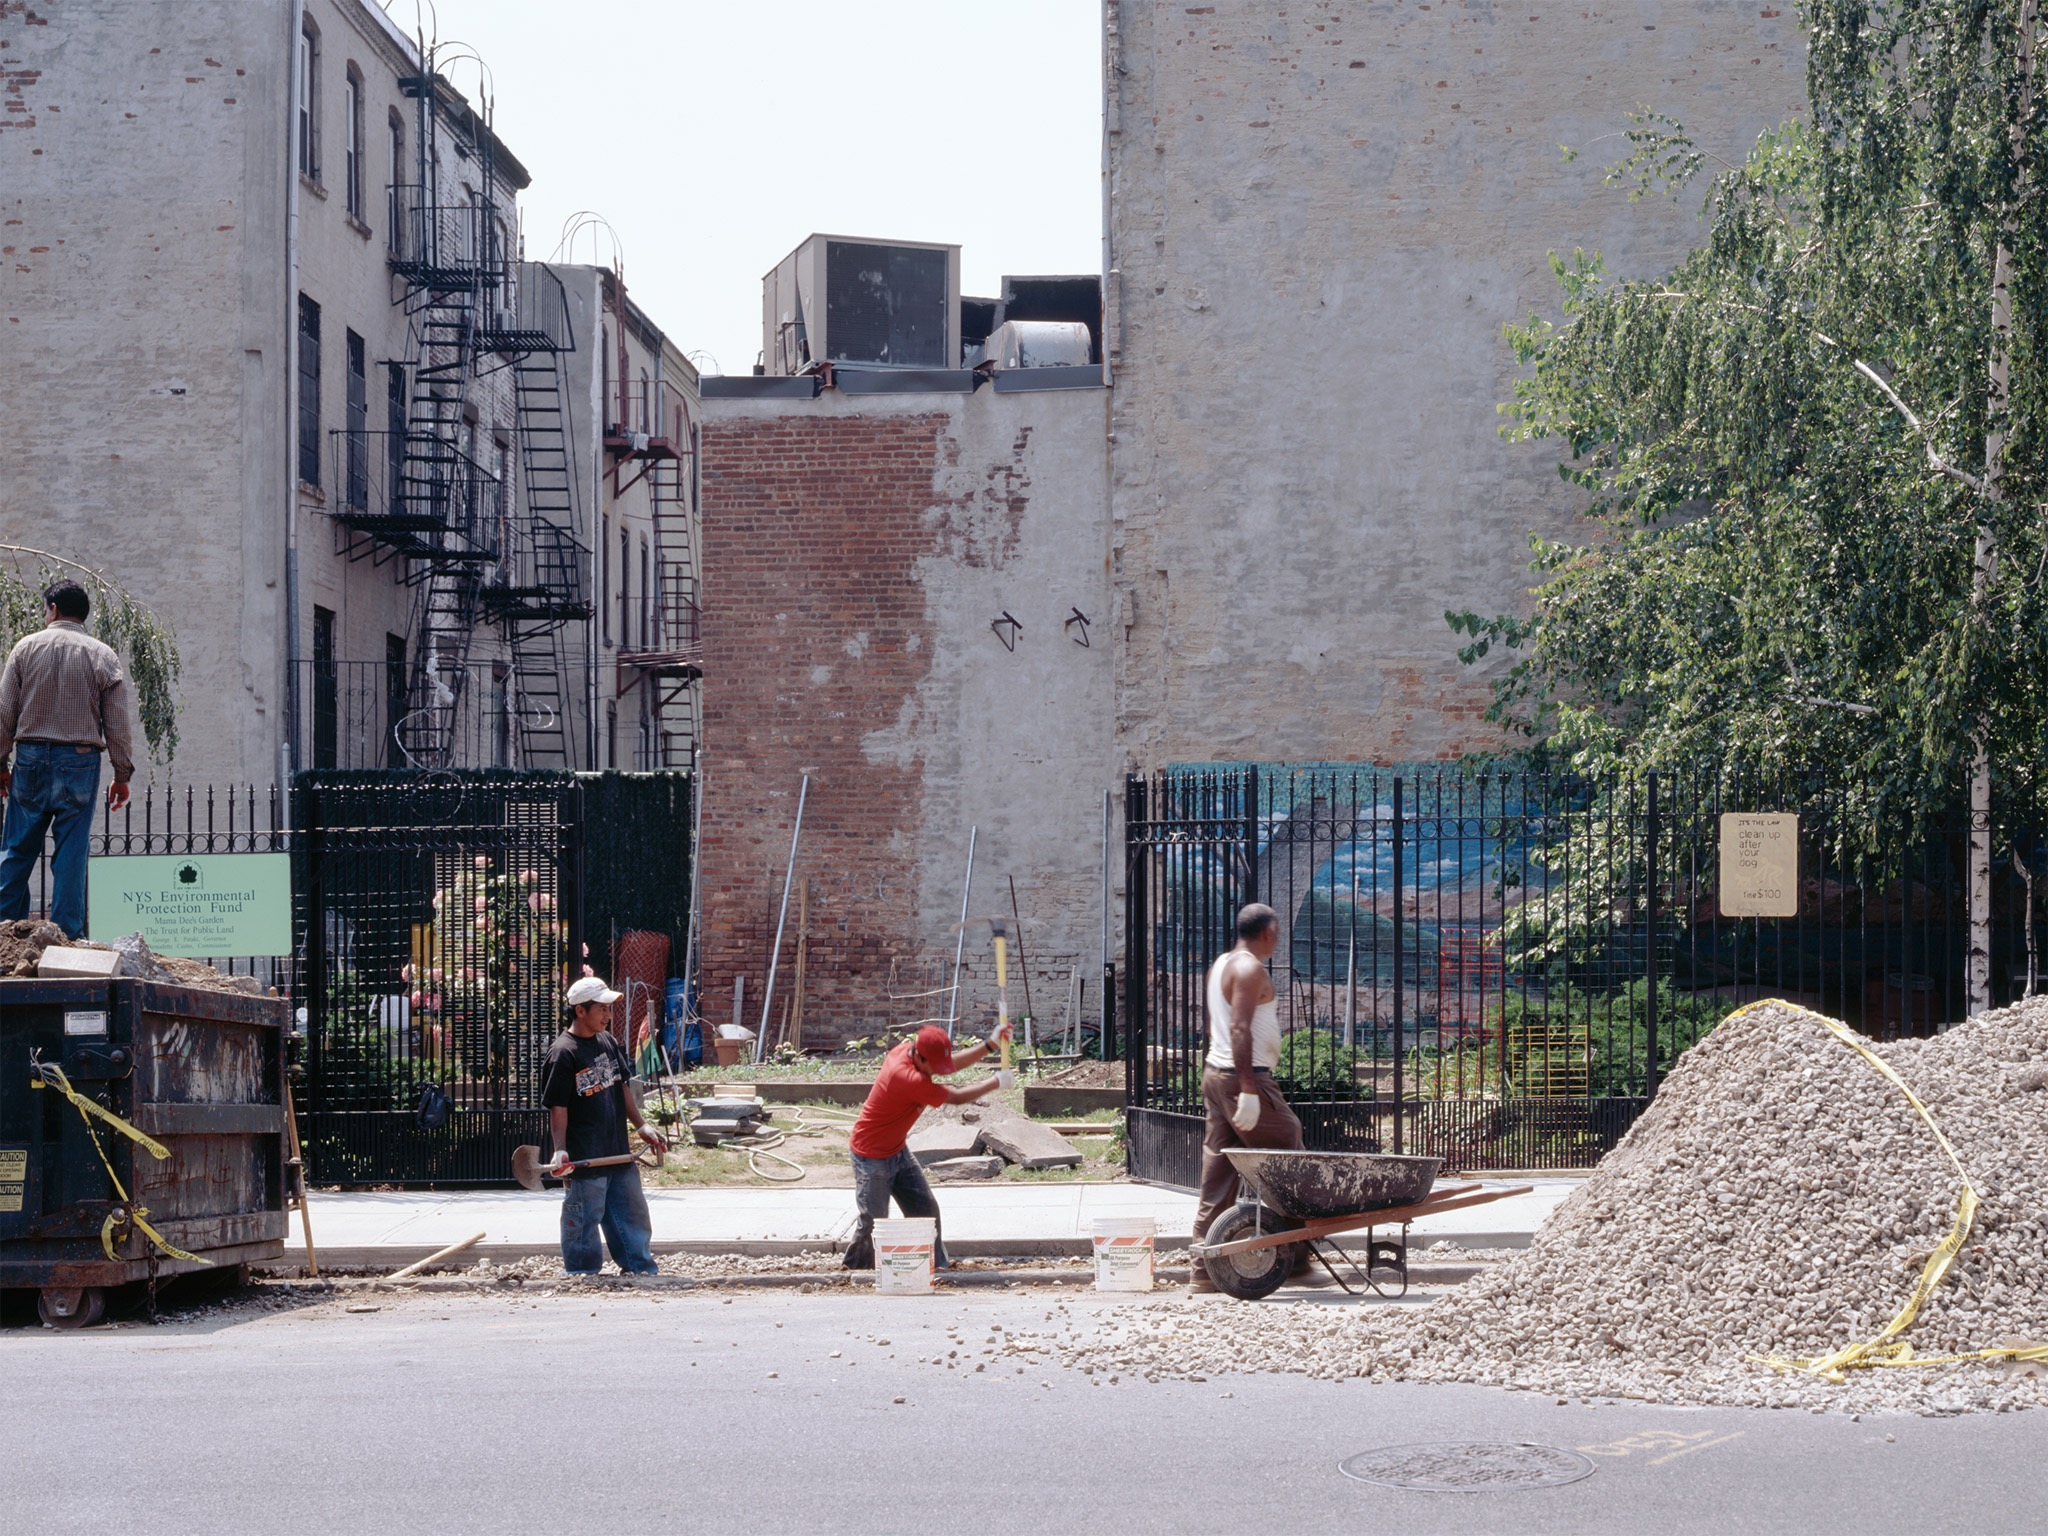 Ditch Diggers   Crown Heights 2006   Bergen Street between Rogers Ave. and Bedford Ave.  40.675394, -73.953043